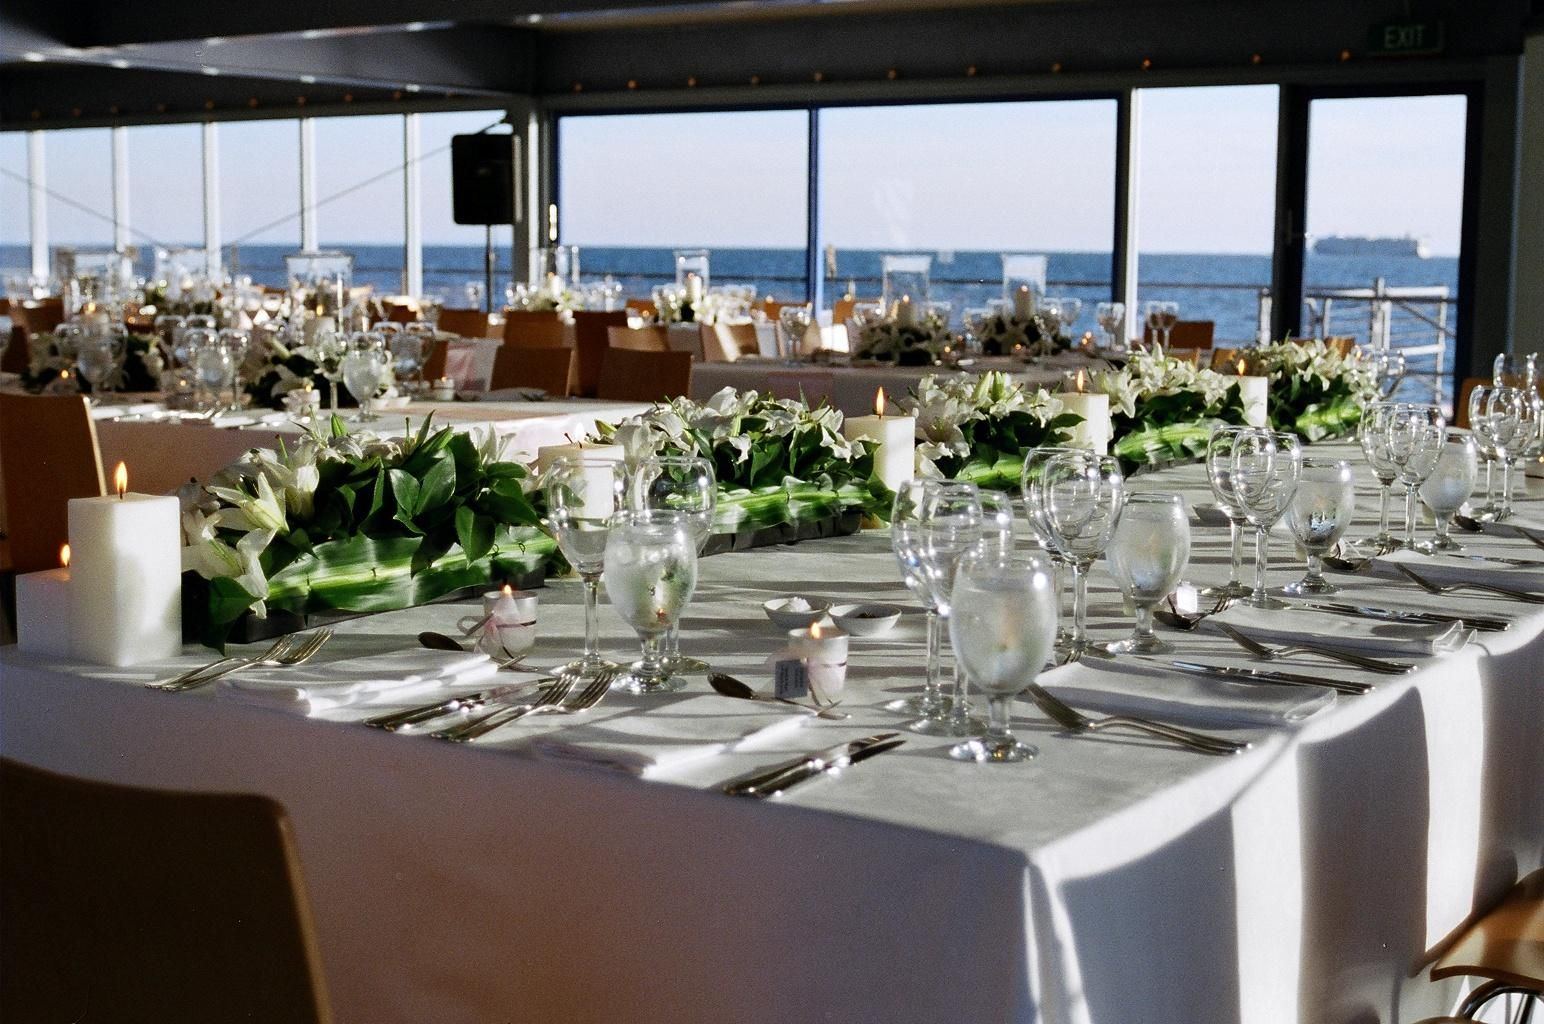 Weddings The Port Melbourne Yacht Club Ancd At Water S Edge Showcases Some Of Best